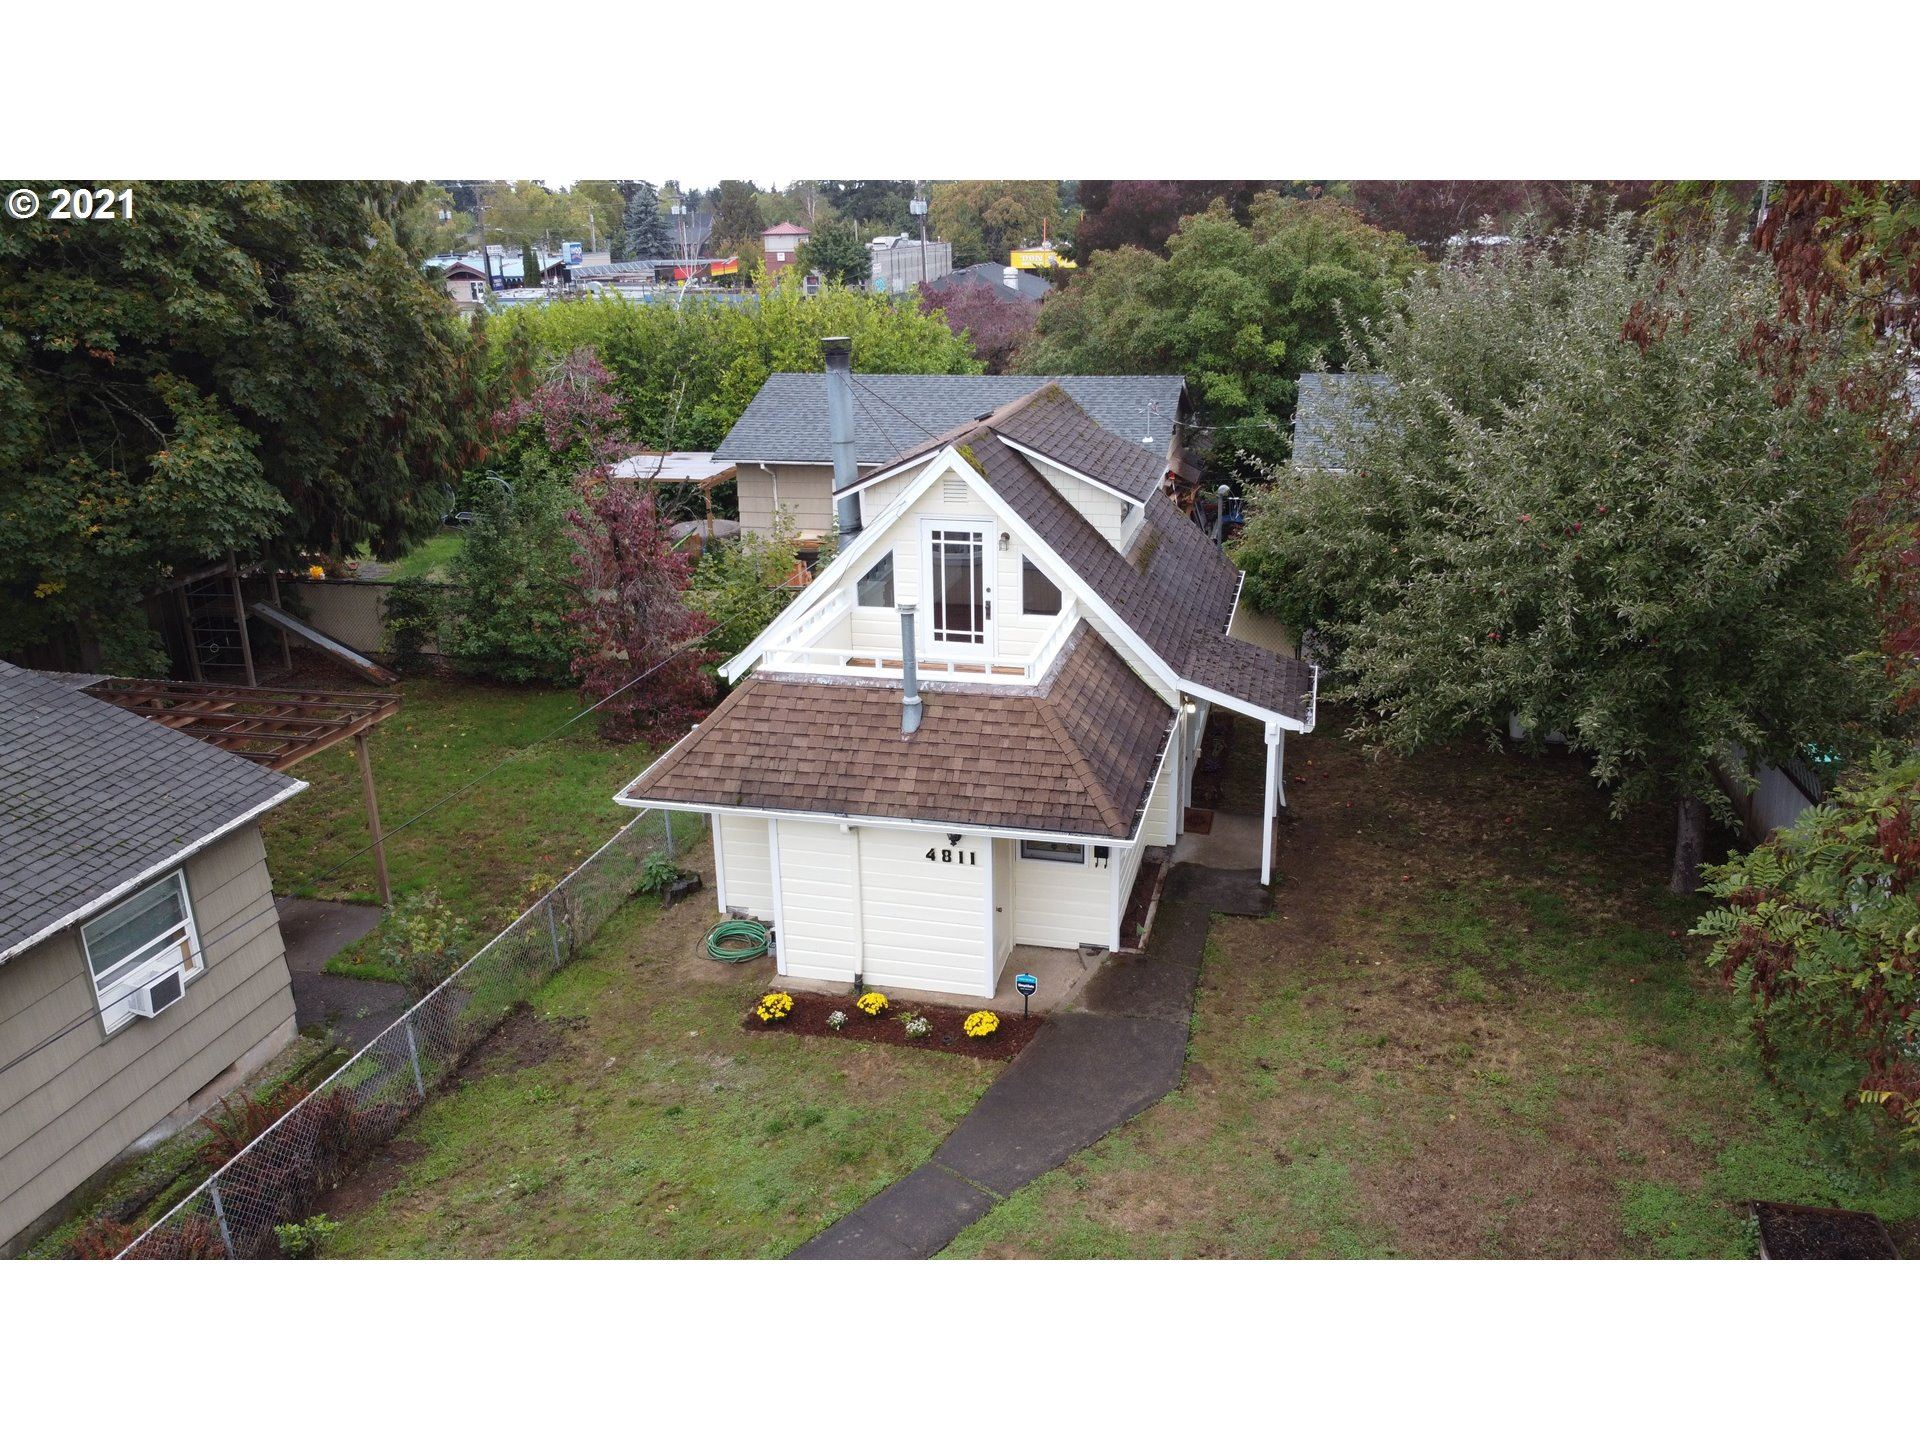 4811 SE 84TH AVE, Portland, OR 97266 - MLS#: 21671101